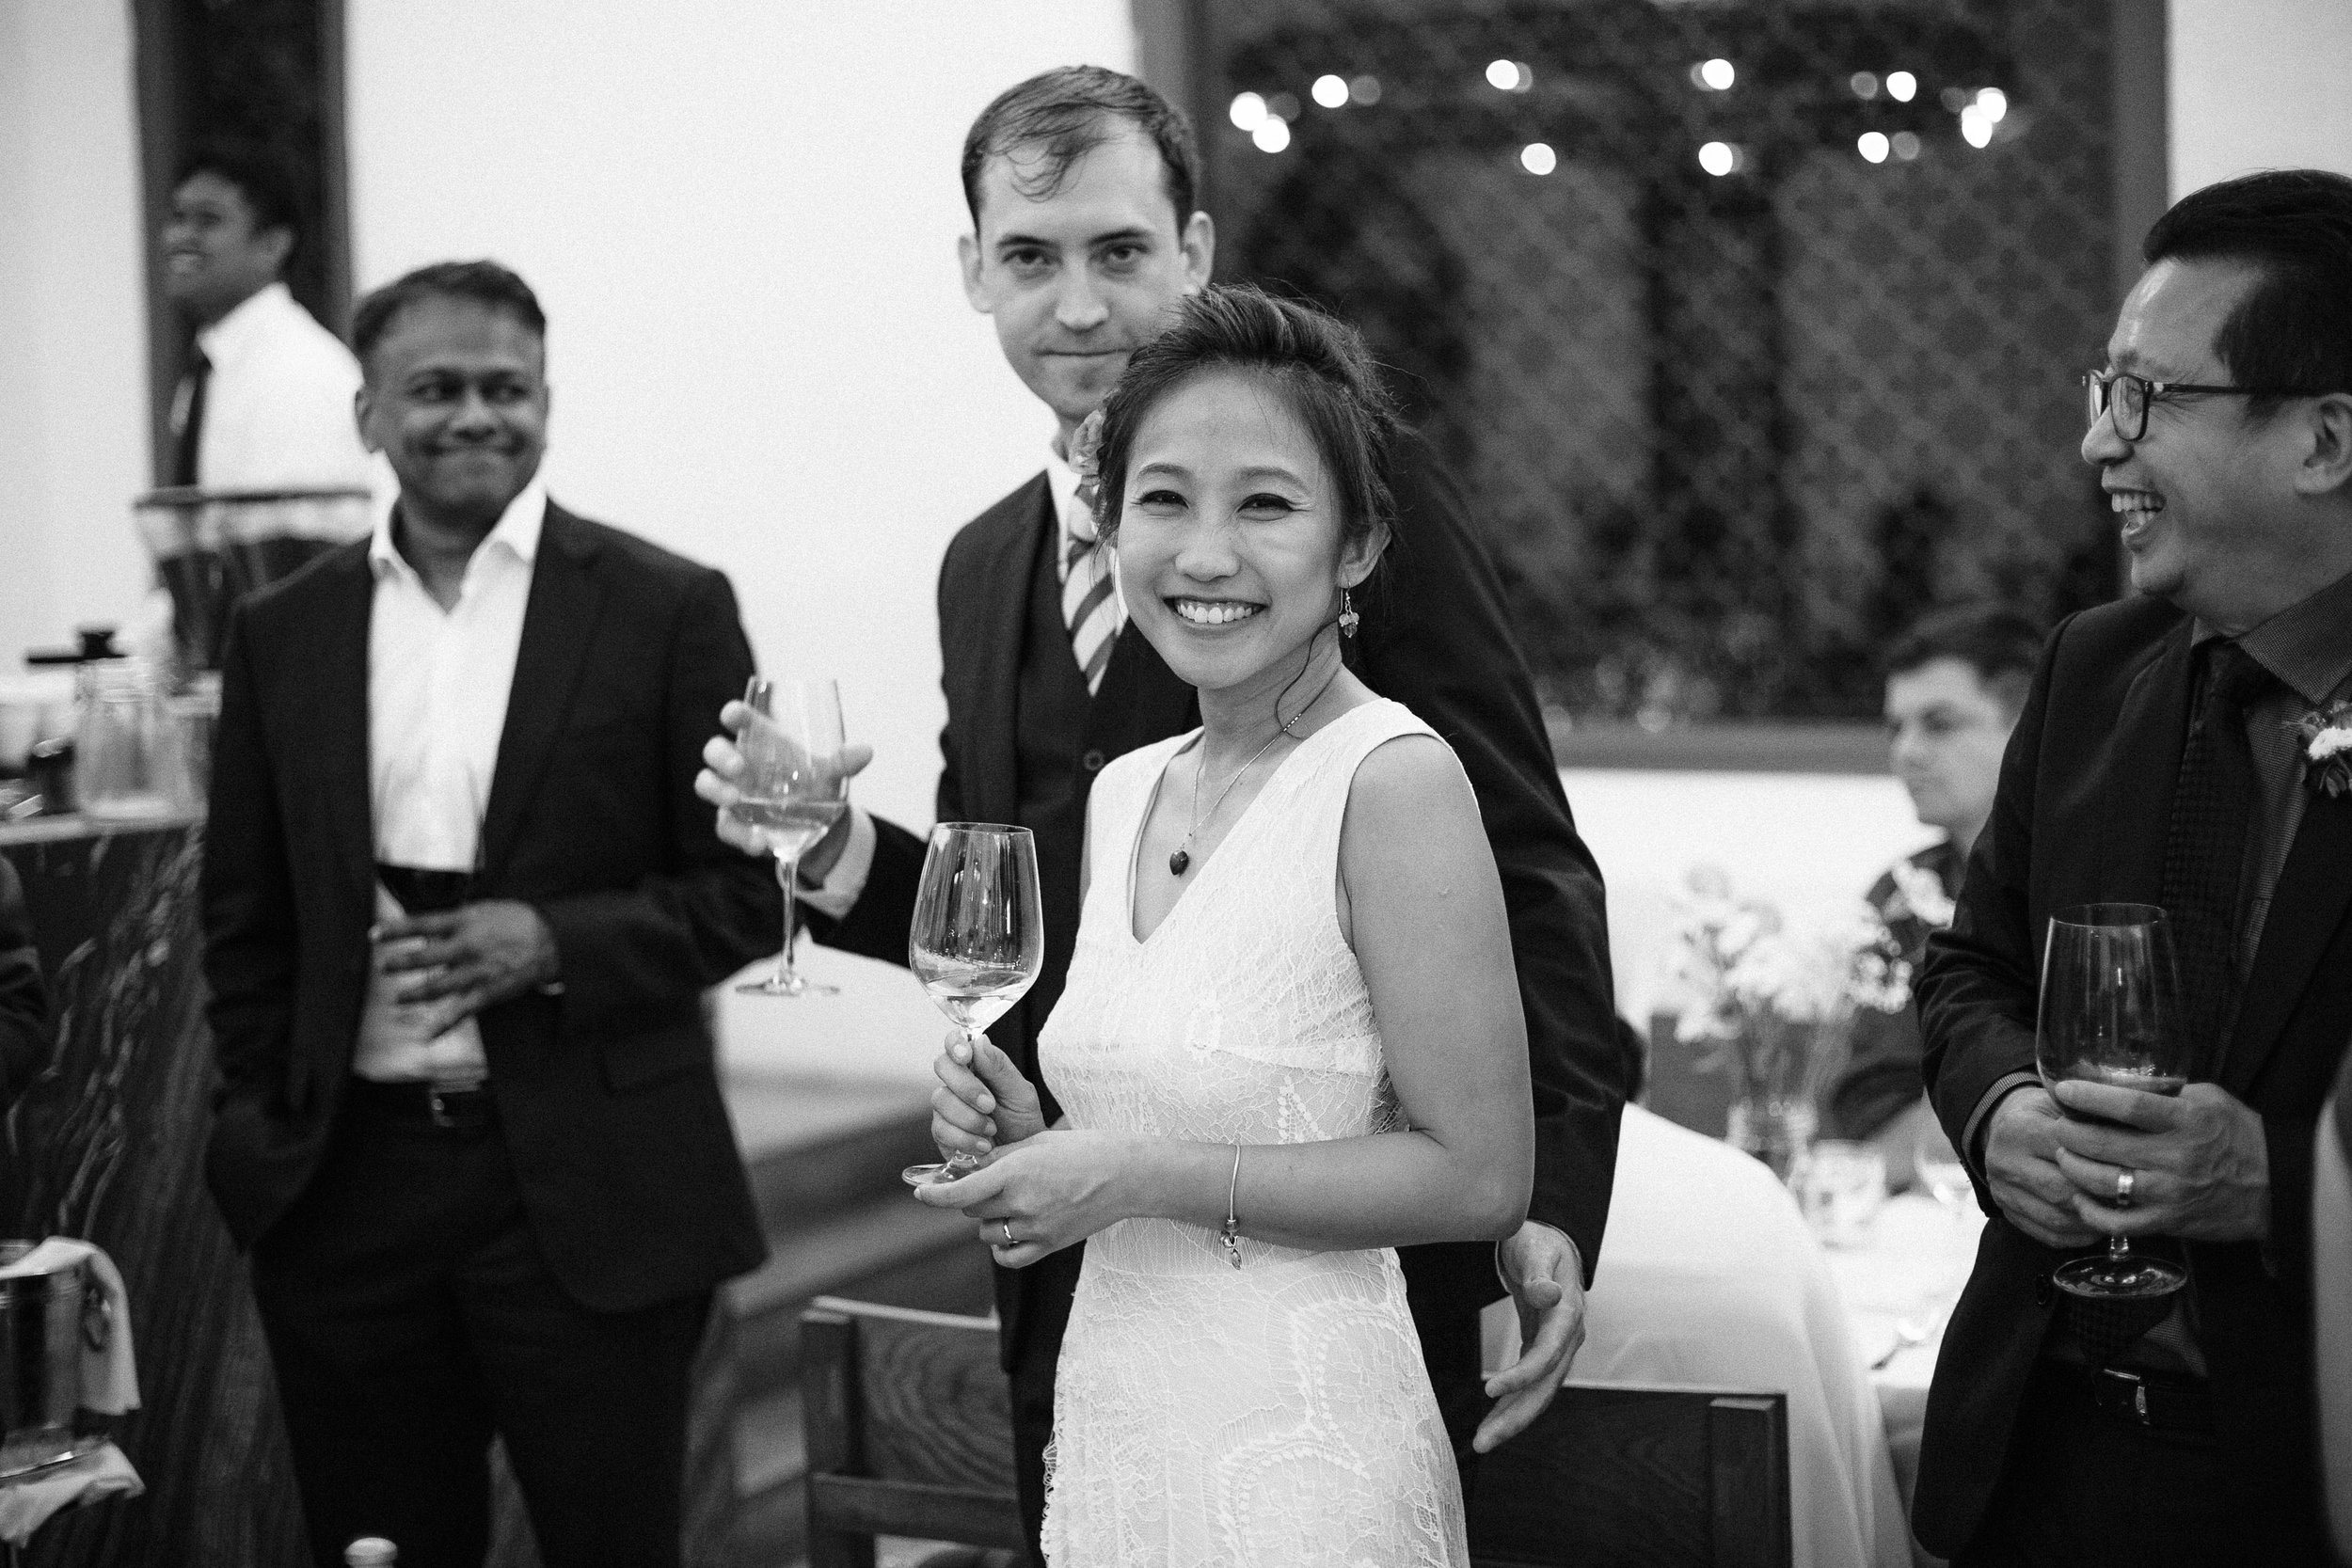 singapore-wedding-photographer-hiram-joyce-073.jpg